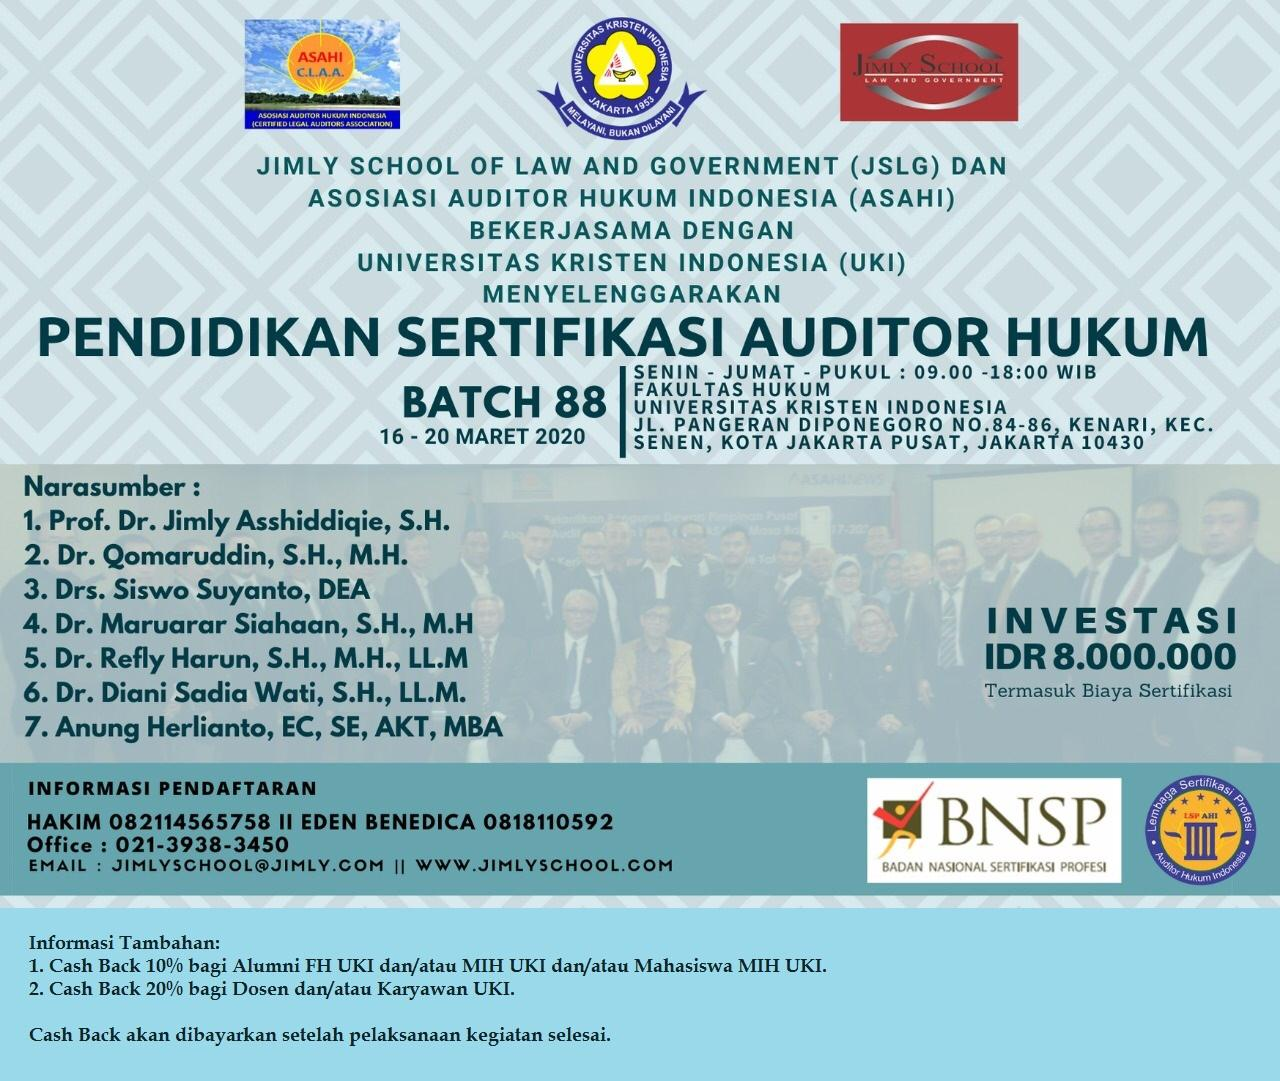 Fakultas Hukum UKI bekerja sama dengan Jimly School of Law and Government (JSLG) & Asosiasi Auditor Hukum Indonesia (ASAHI)